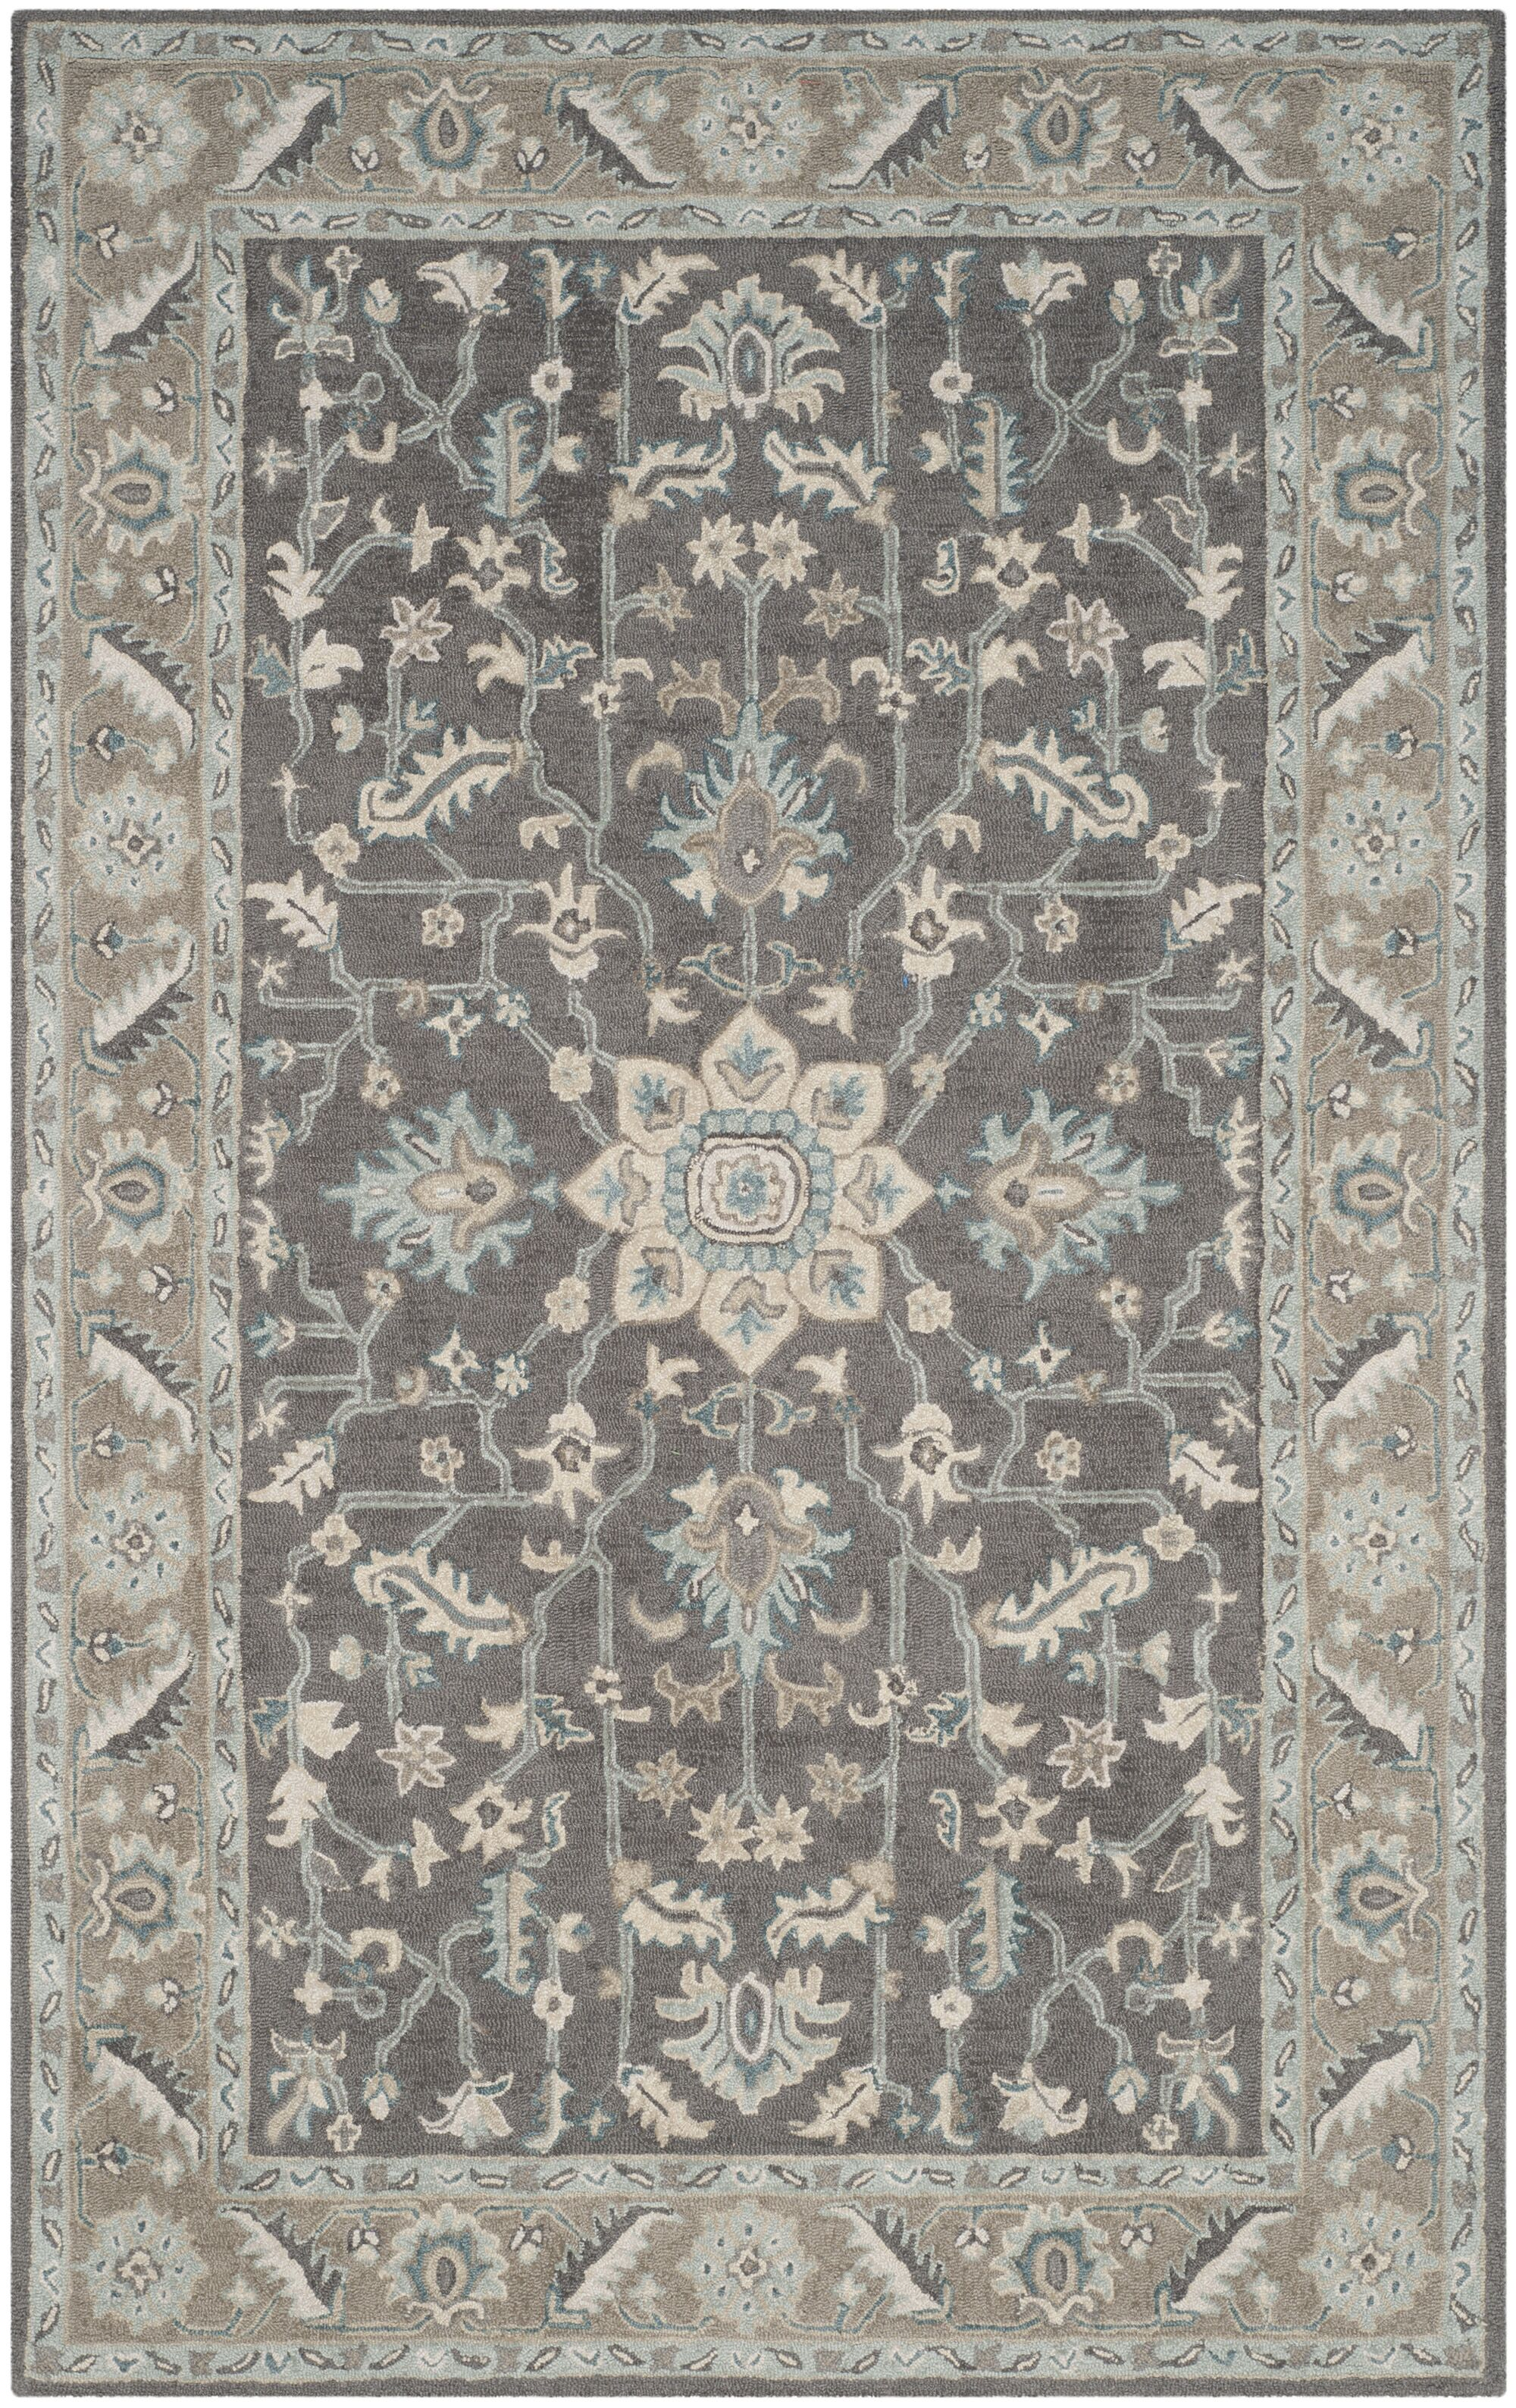 Kilbourne Hand-Tufted Dark Gray/Light Brown Area Rug Rug Size: Rectangle 4' x 6'